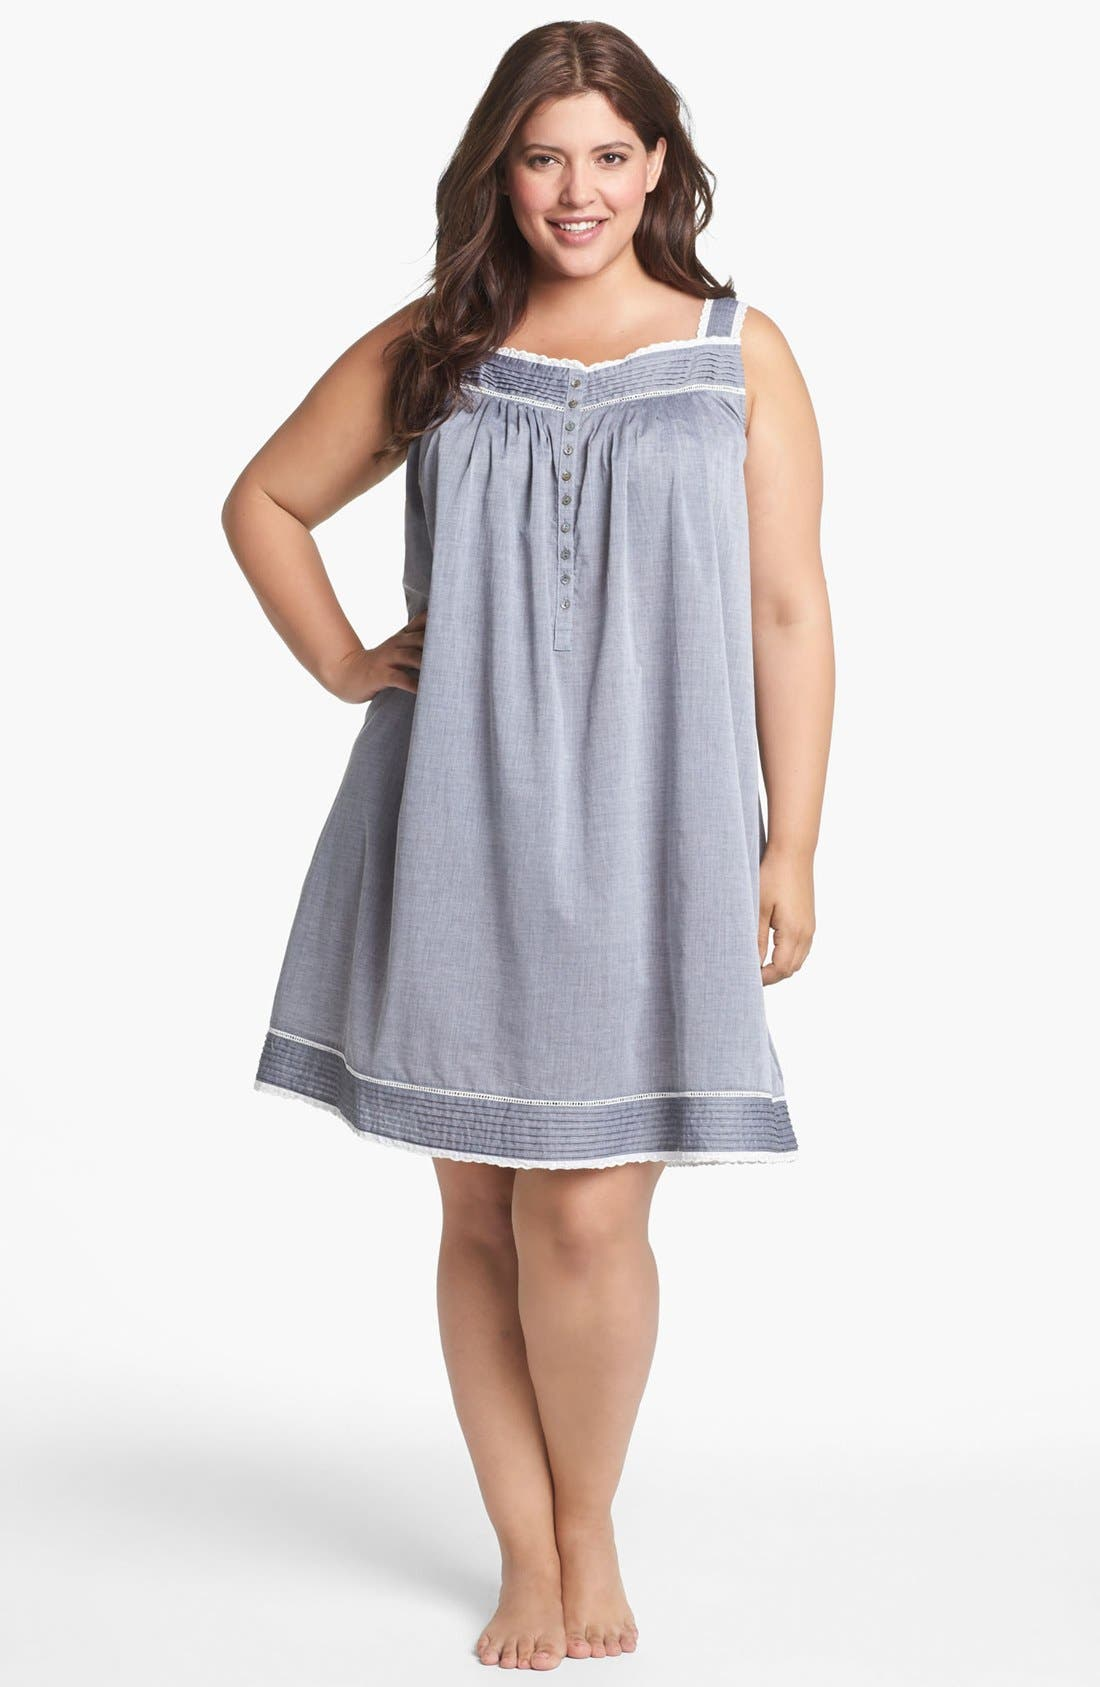 Alternate Image 1 Selected - Eileen West 'Delightful Day' Short Nightgown (Plus Size)